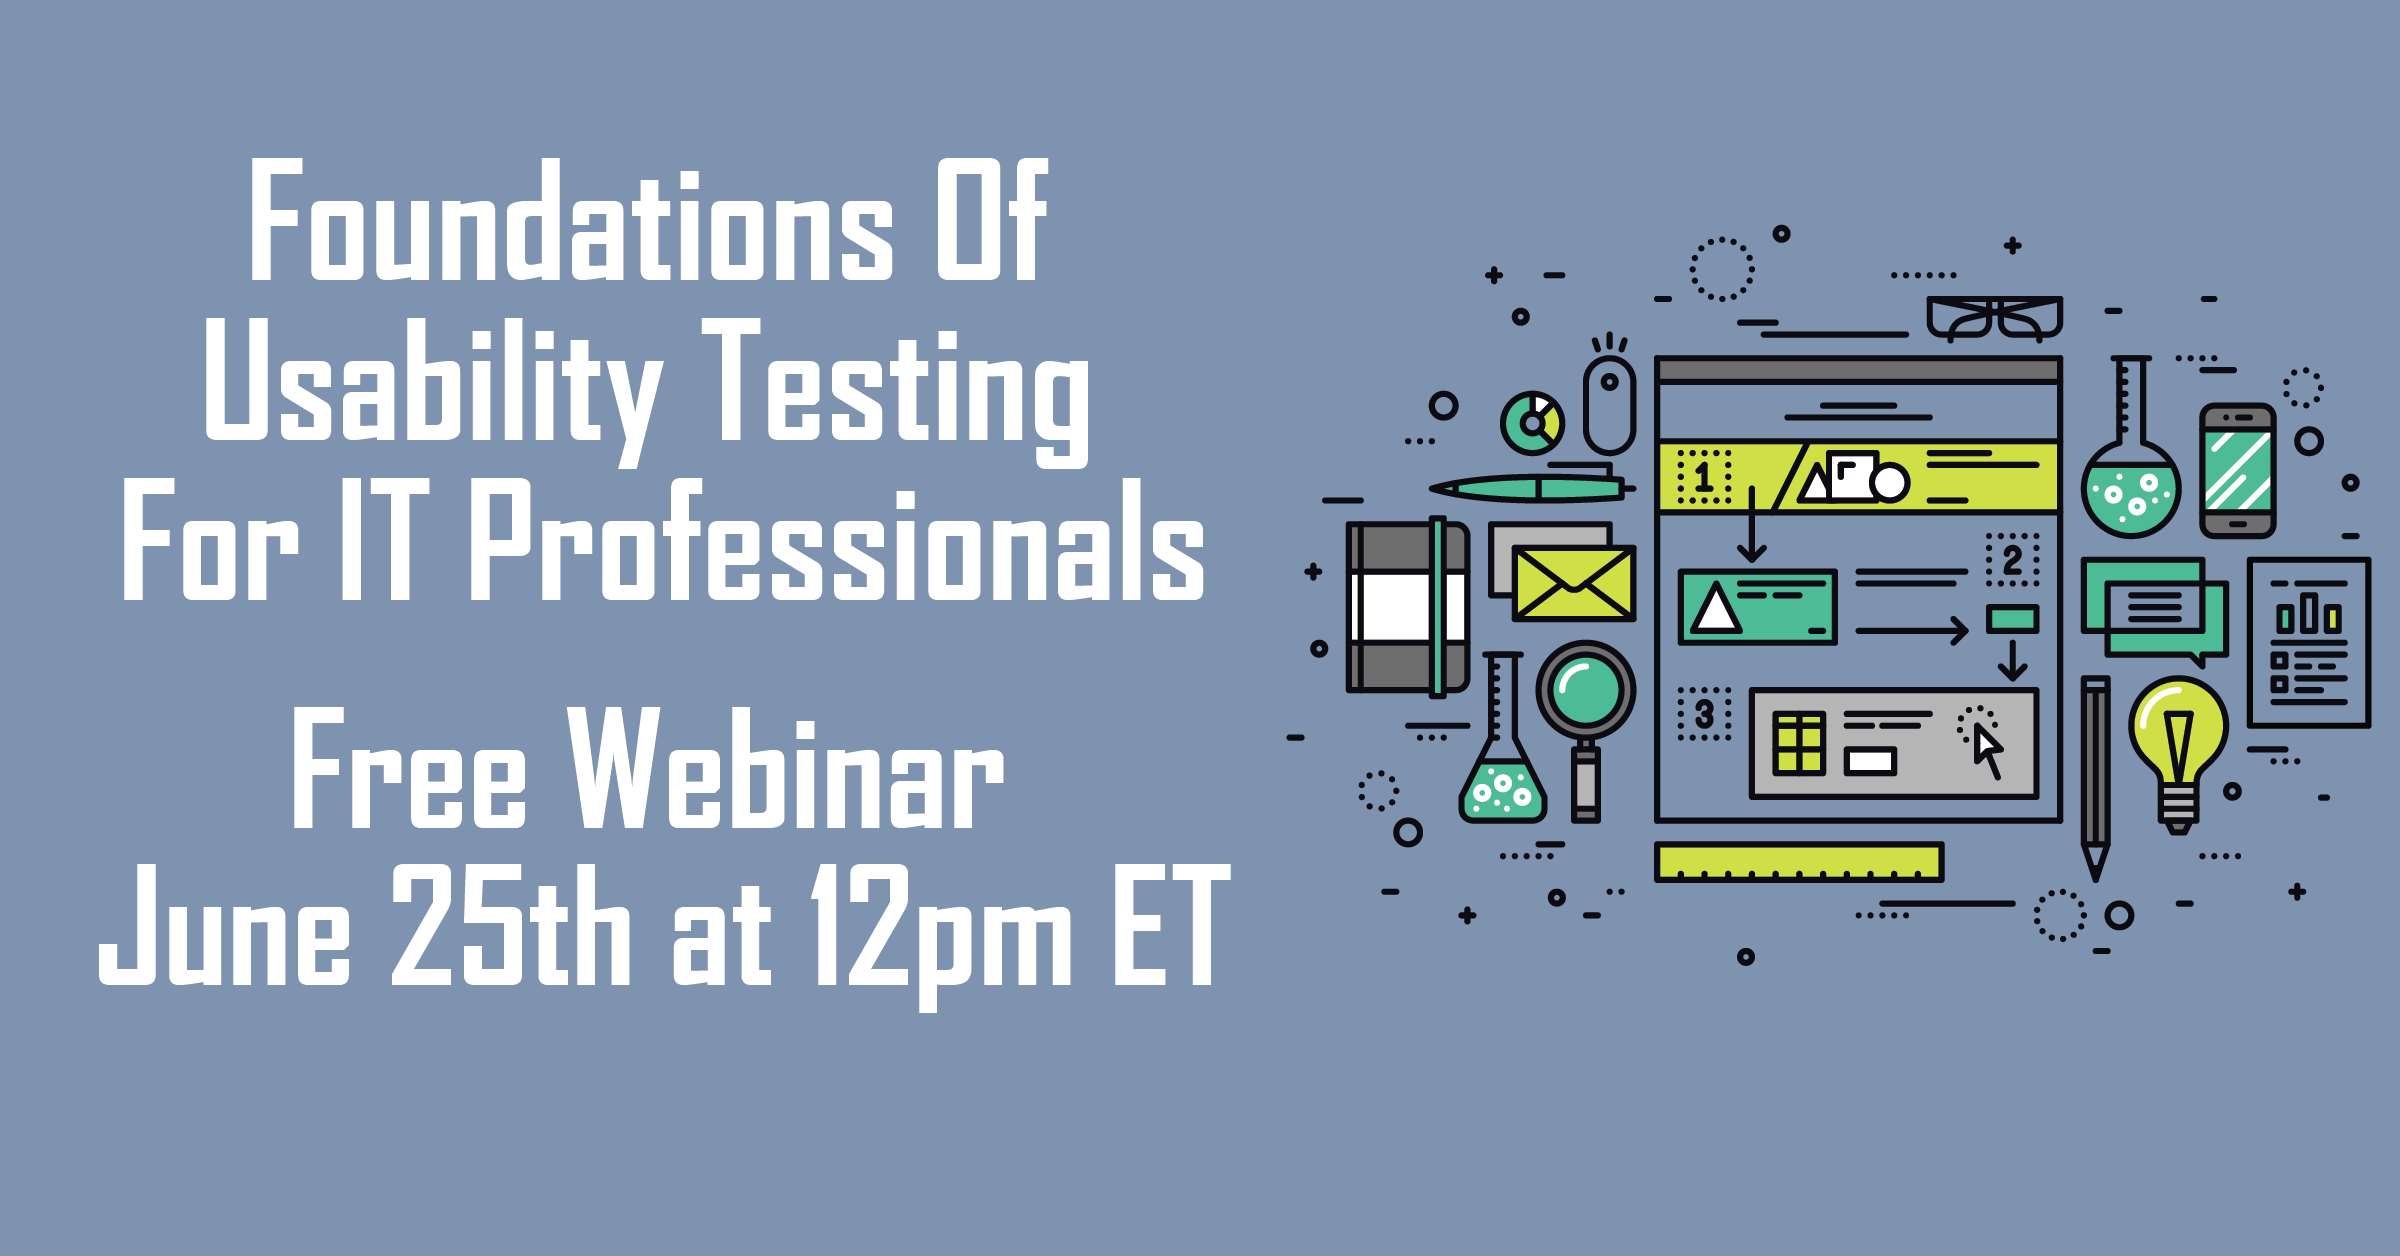 Foundations of Usability Testing for IT professionals Webinar